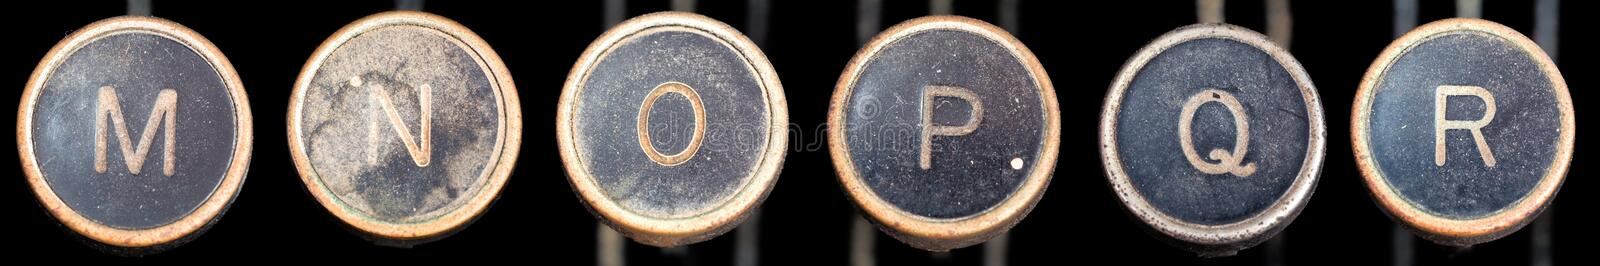 Download Old Typewriter Keys M-R stock image. Image of dirty, letters - 3048737